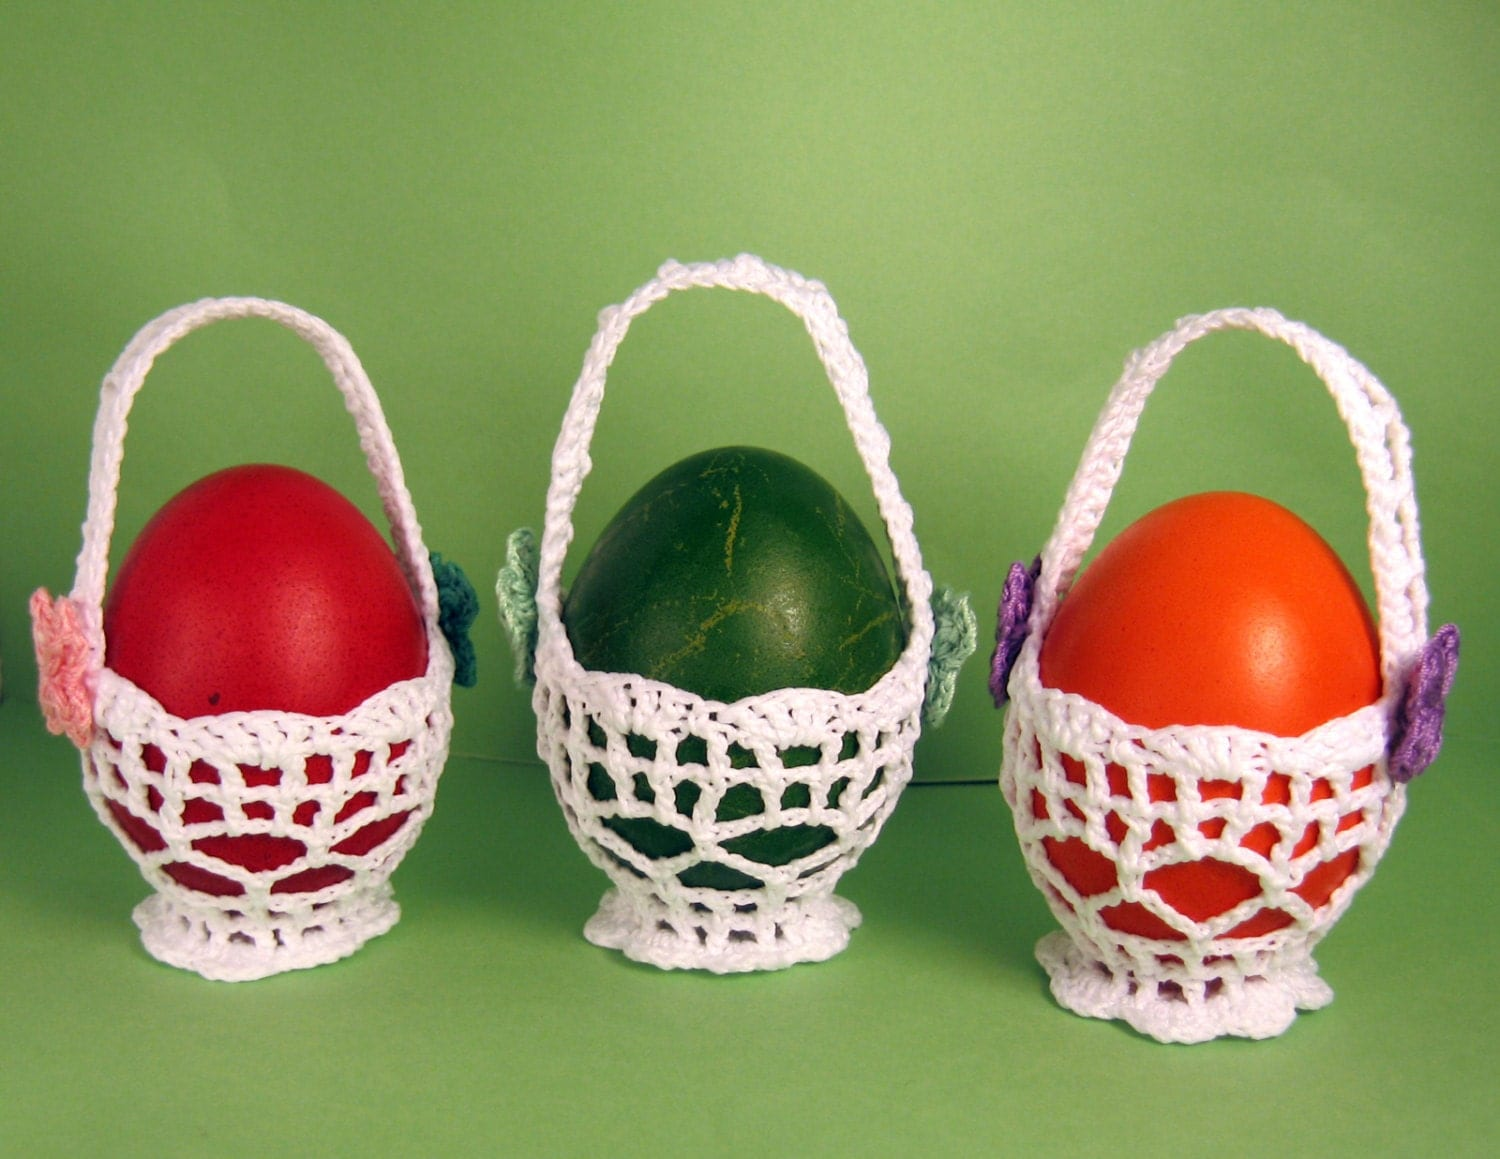 Crochet Easter Baskets Home Decoration Set Of 3 Ornaments